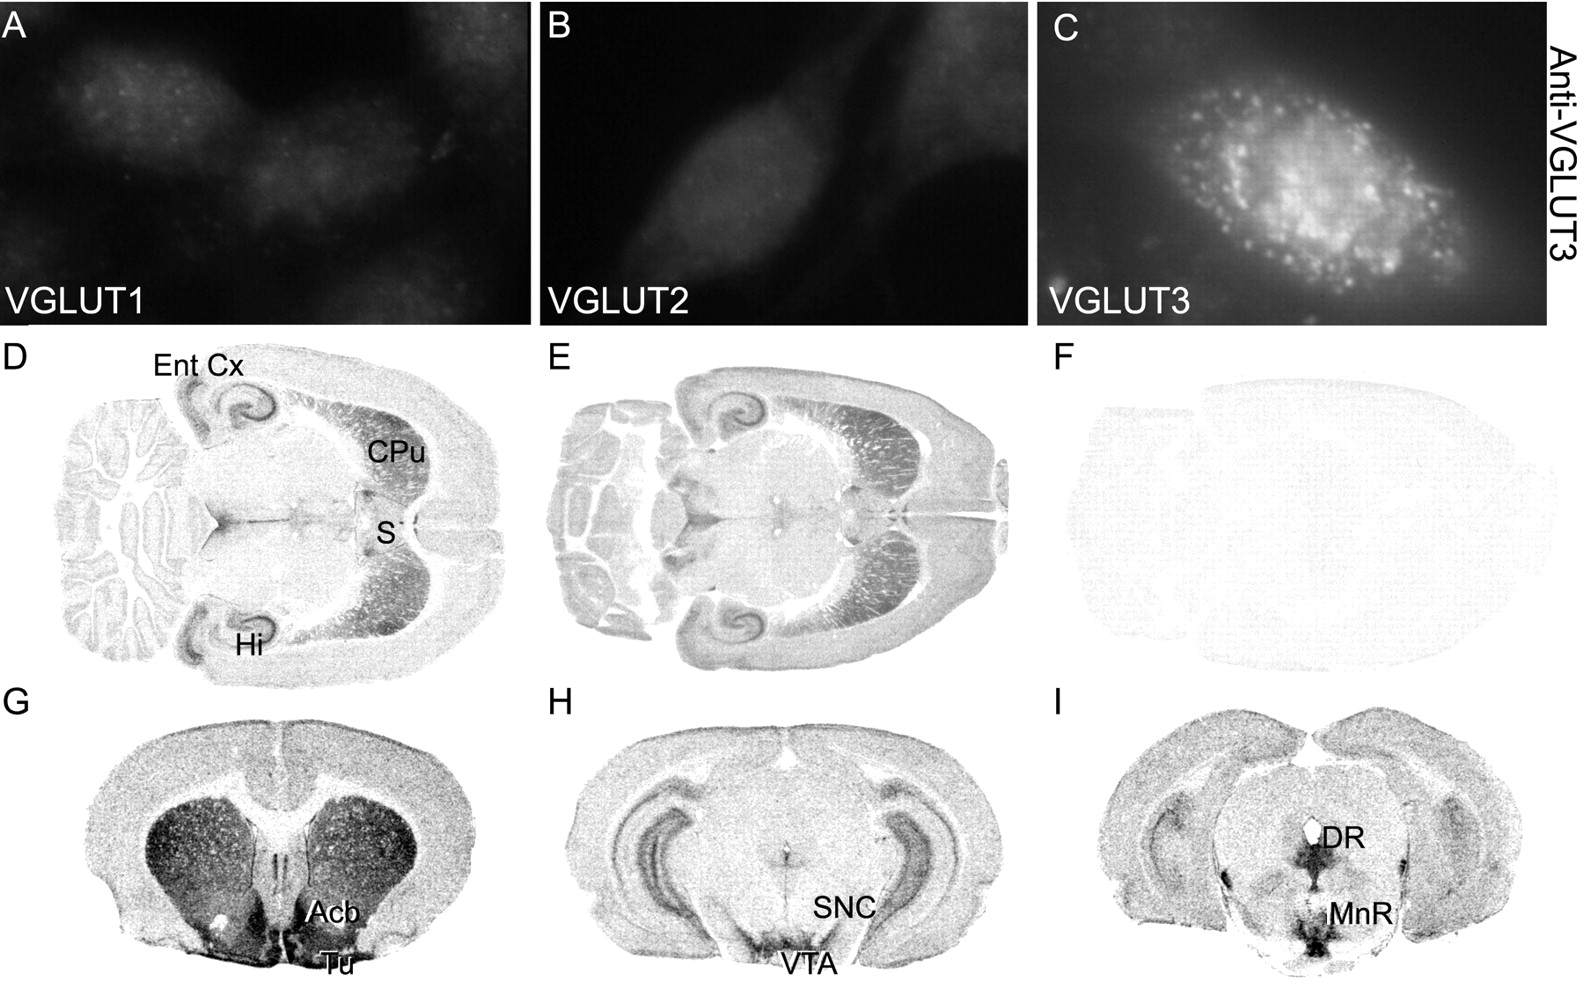 A Third Vesicular Glutamate Transporter Expressed by Cholinergic and